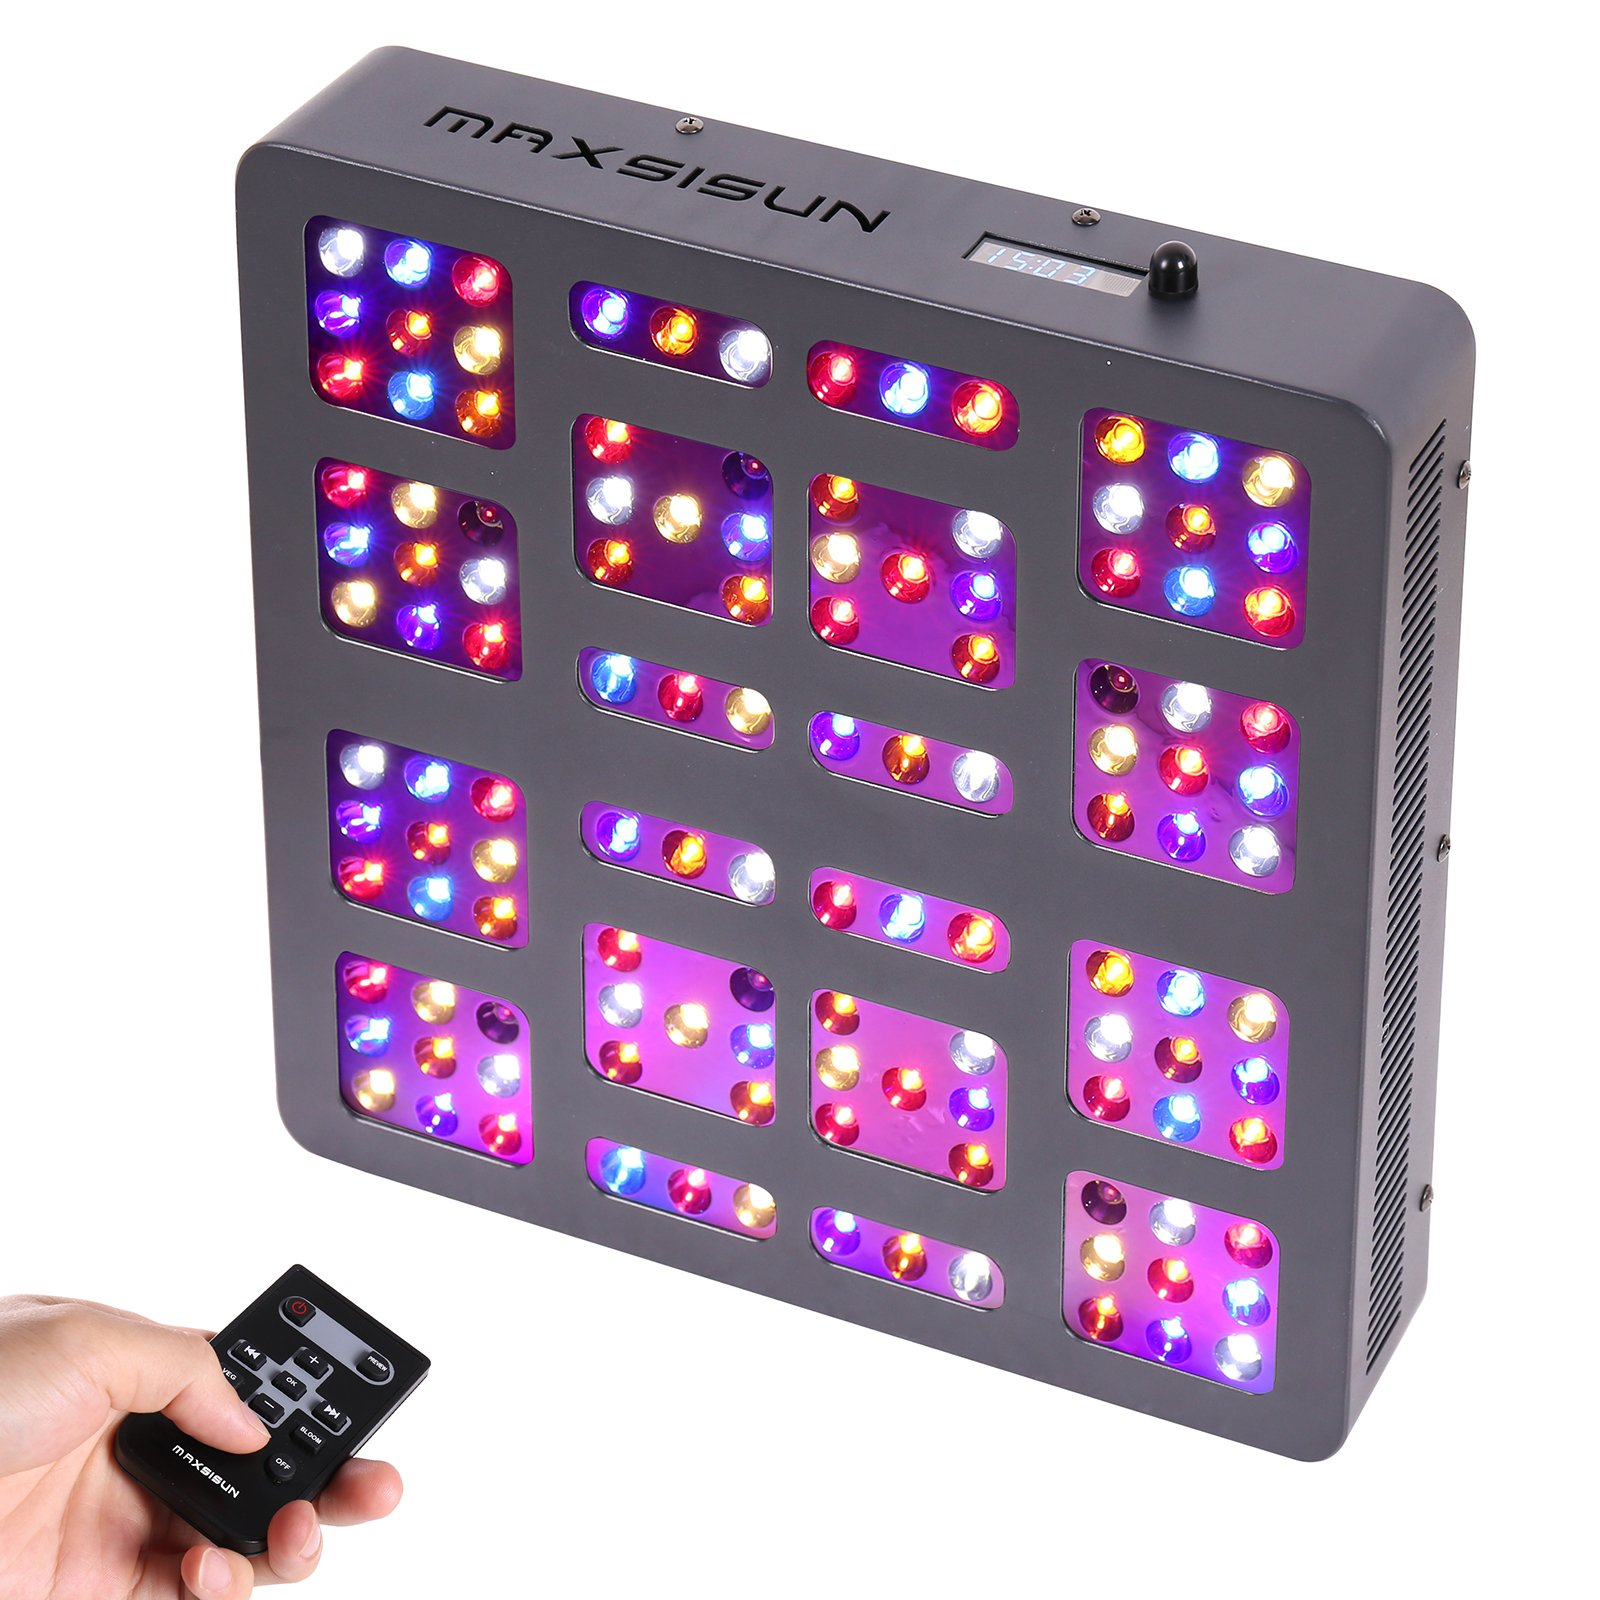 Galleon - MAXSISUN Timer Control 600W LED Grow Light 12-Band